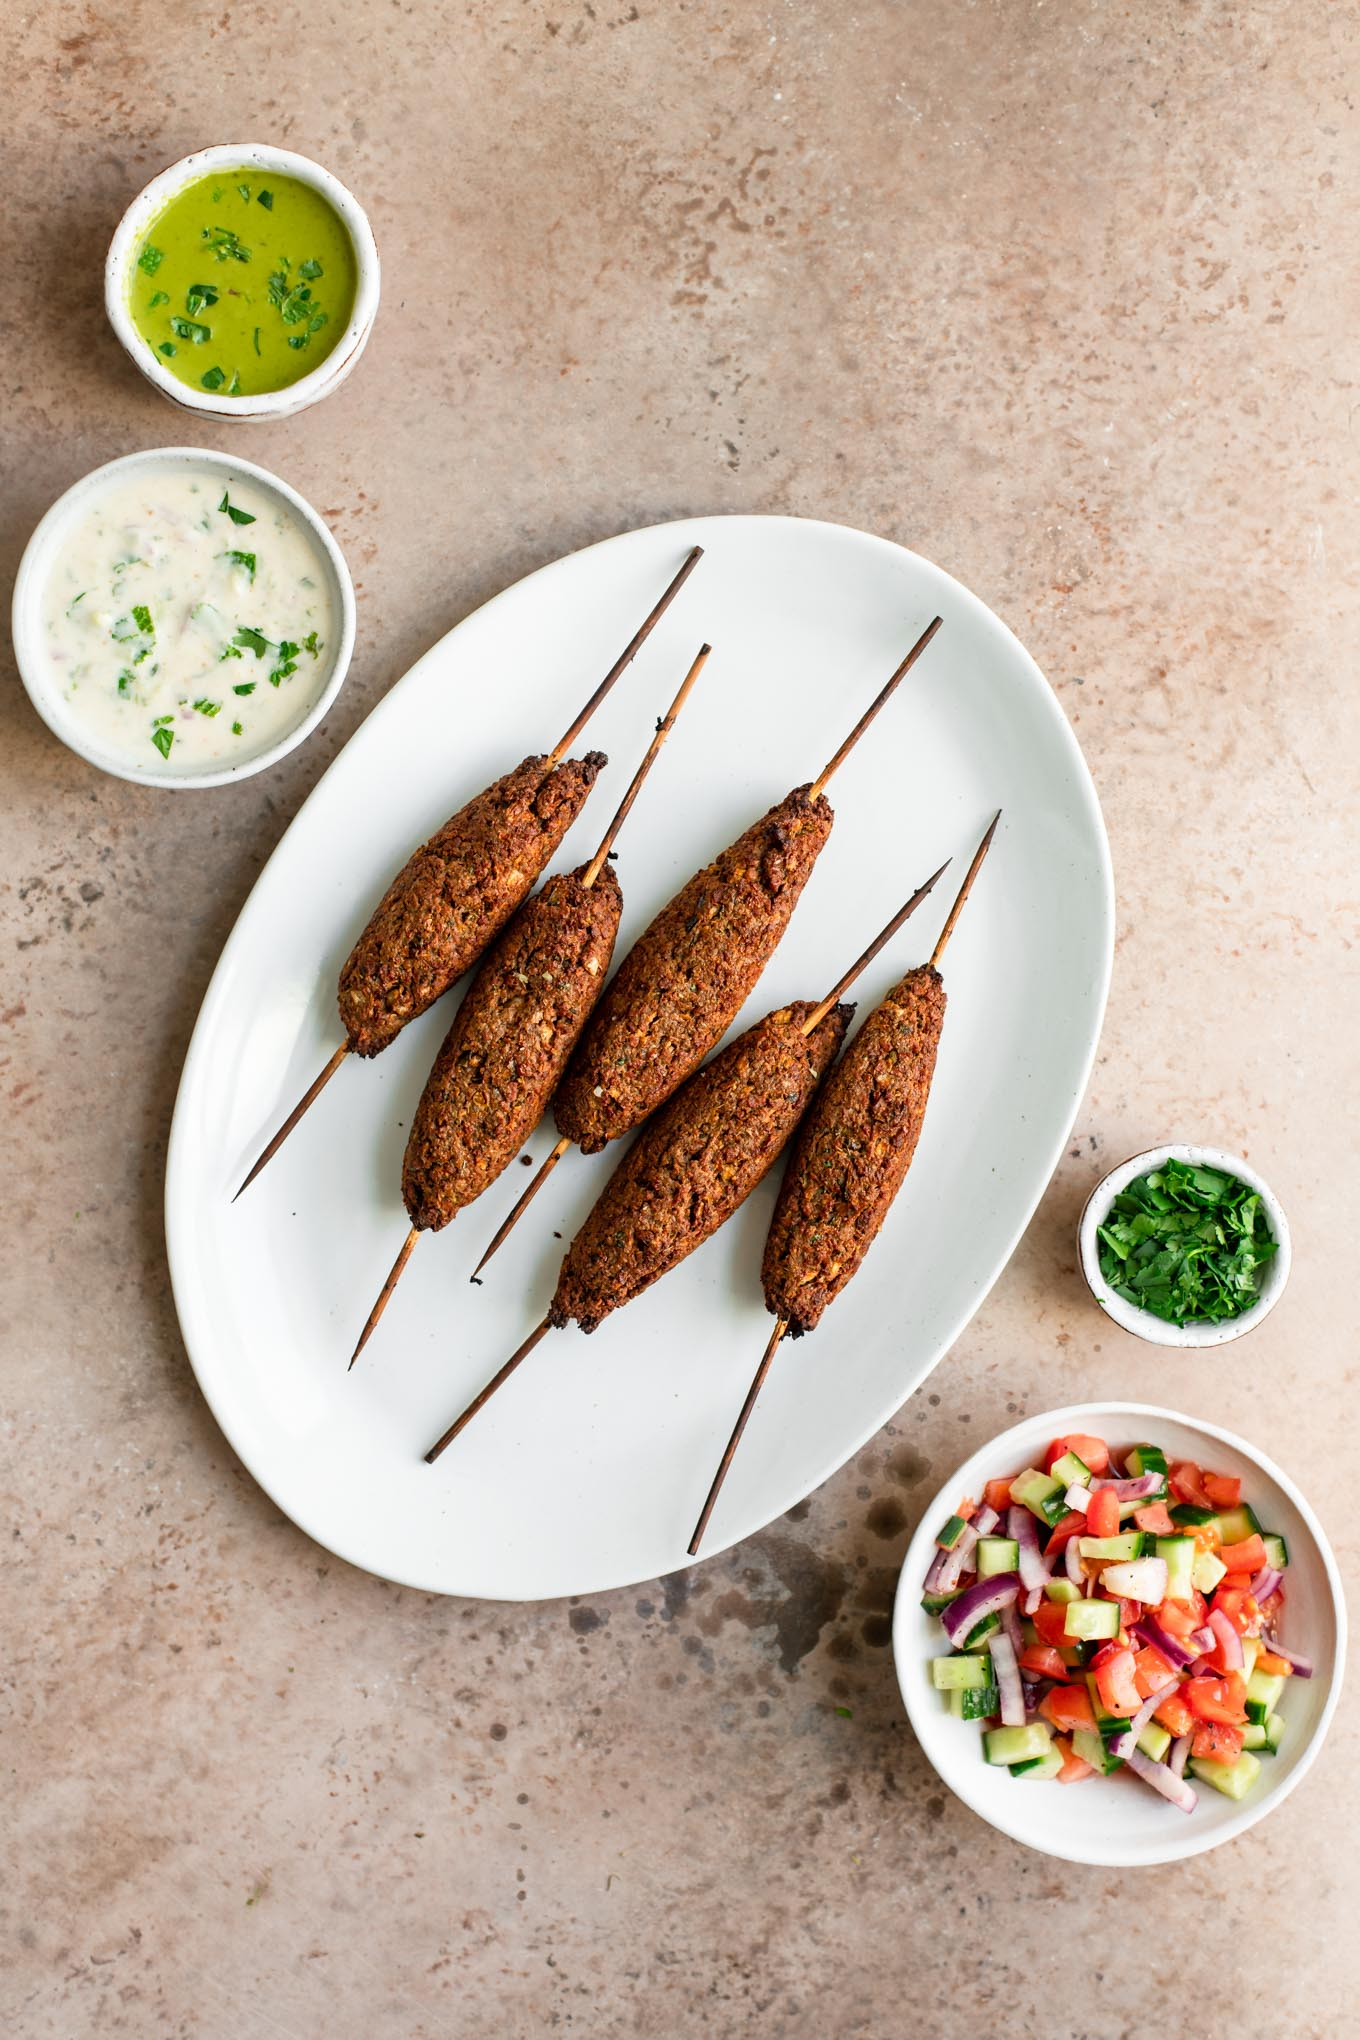 baked vegan sheekh kababs on a plate with sides of chutney, raita, and salad